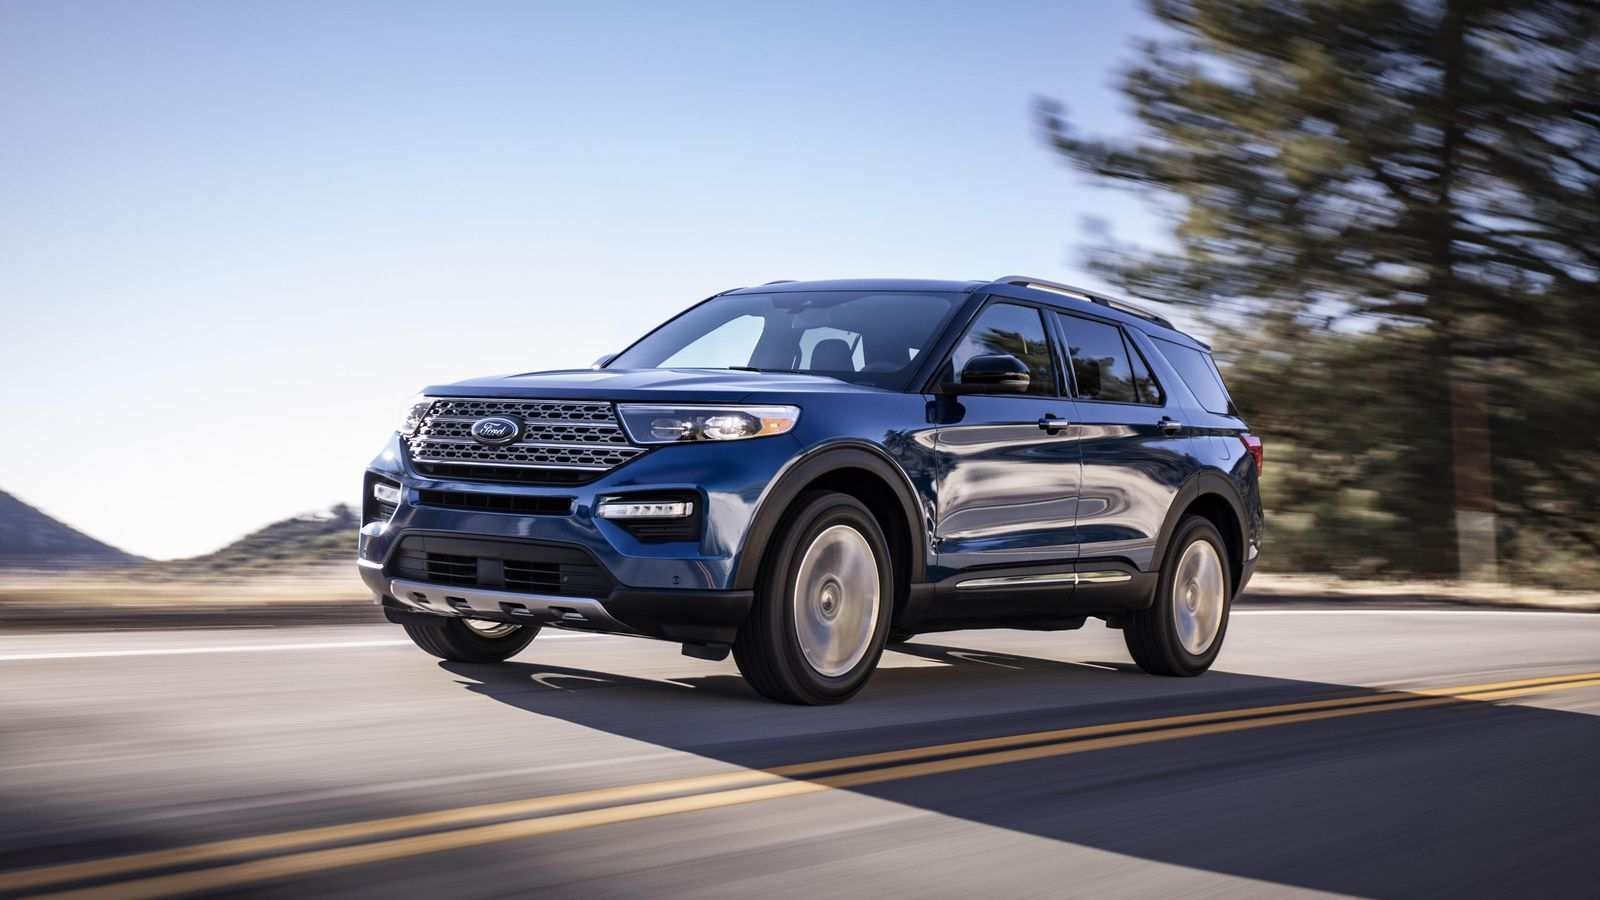 43 New 2020 Ford Explorer Sports Redesign and Concept by 2020 Ford Explorer Sports